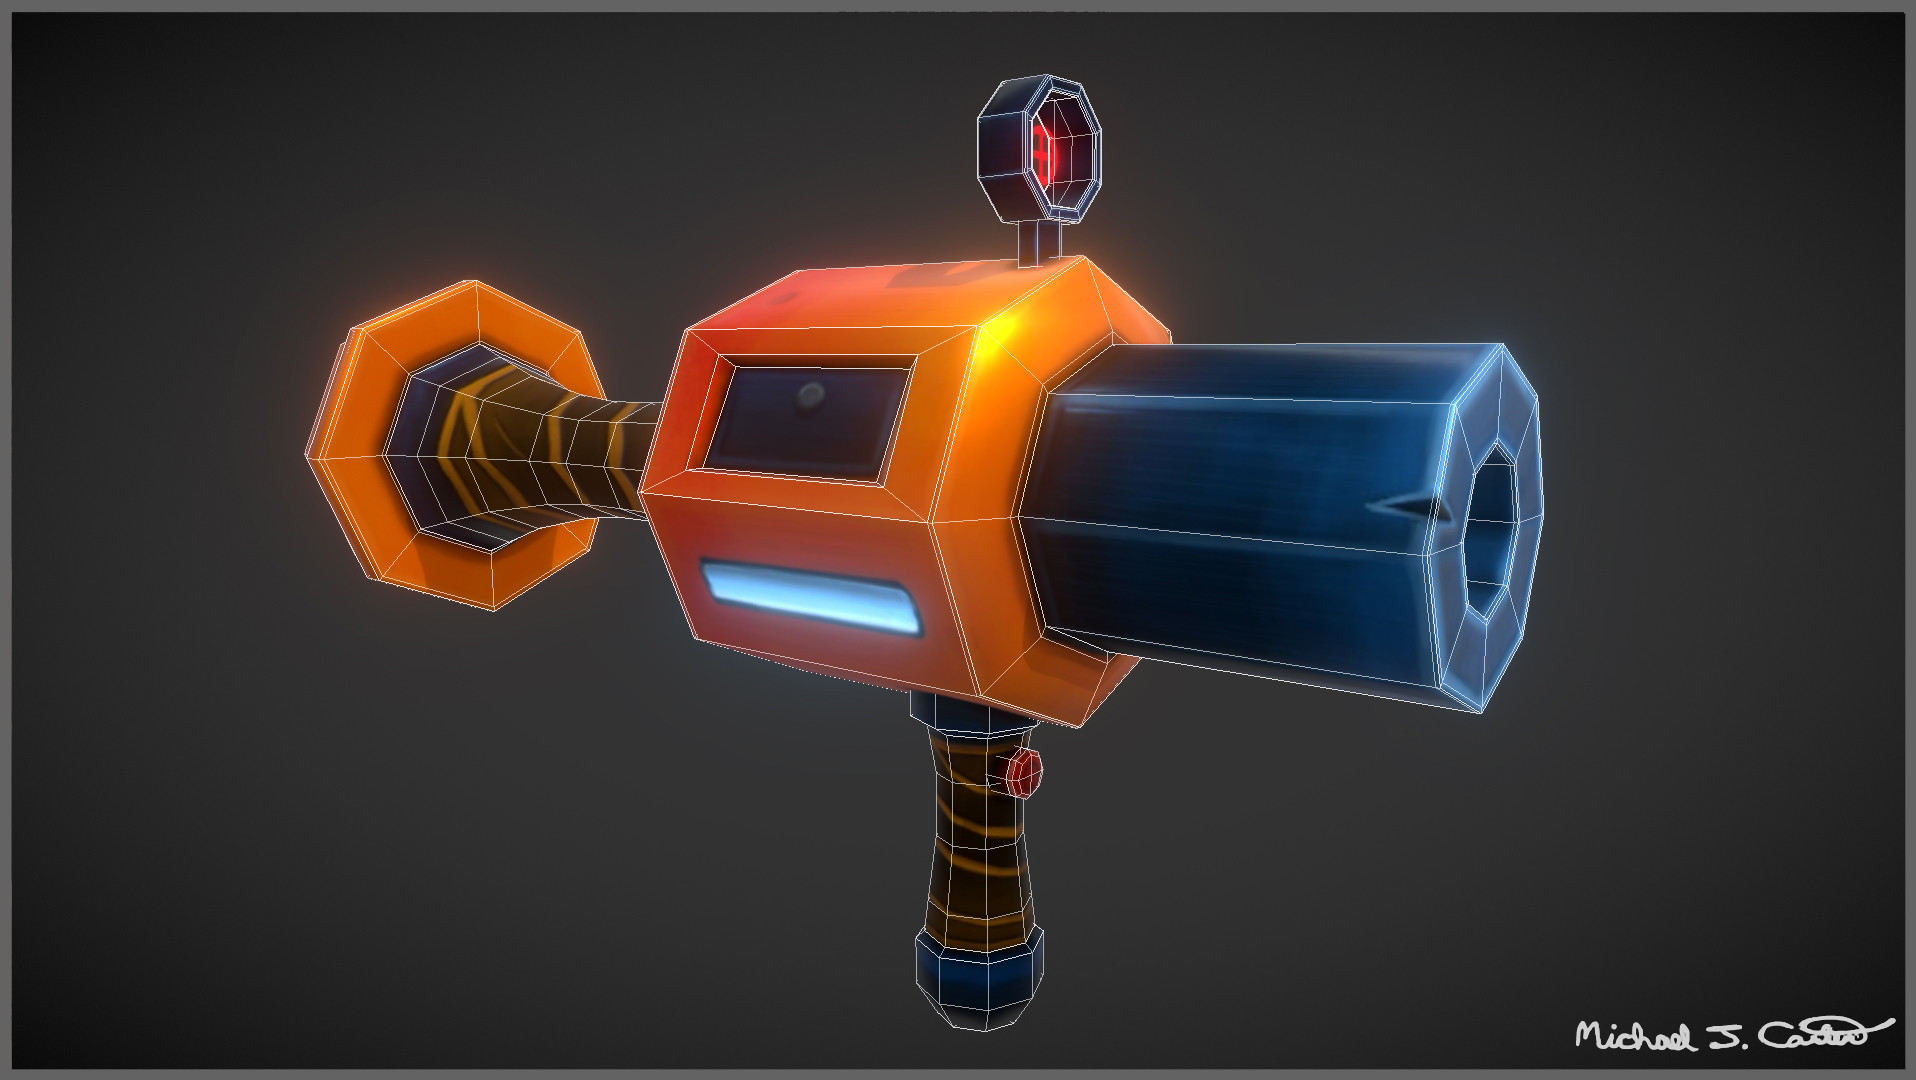 Michael jake carter mcarter stylized grenade launcher right side image